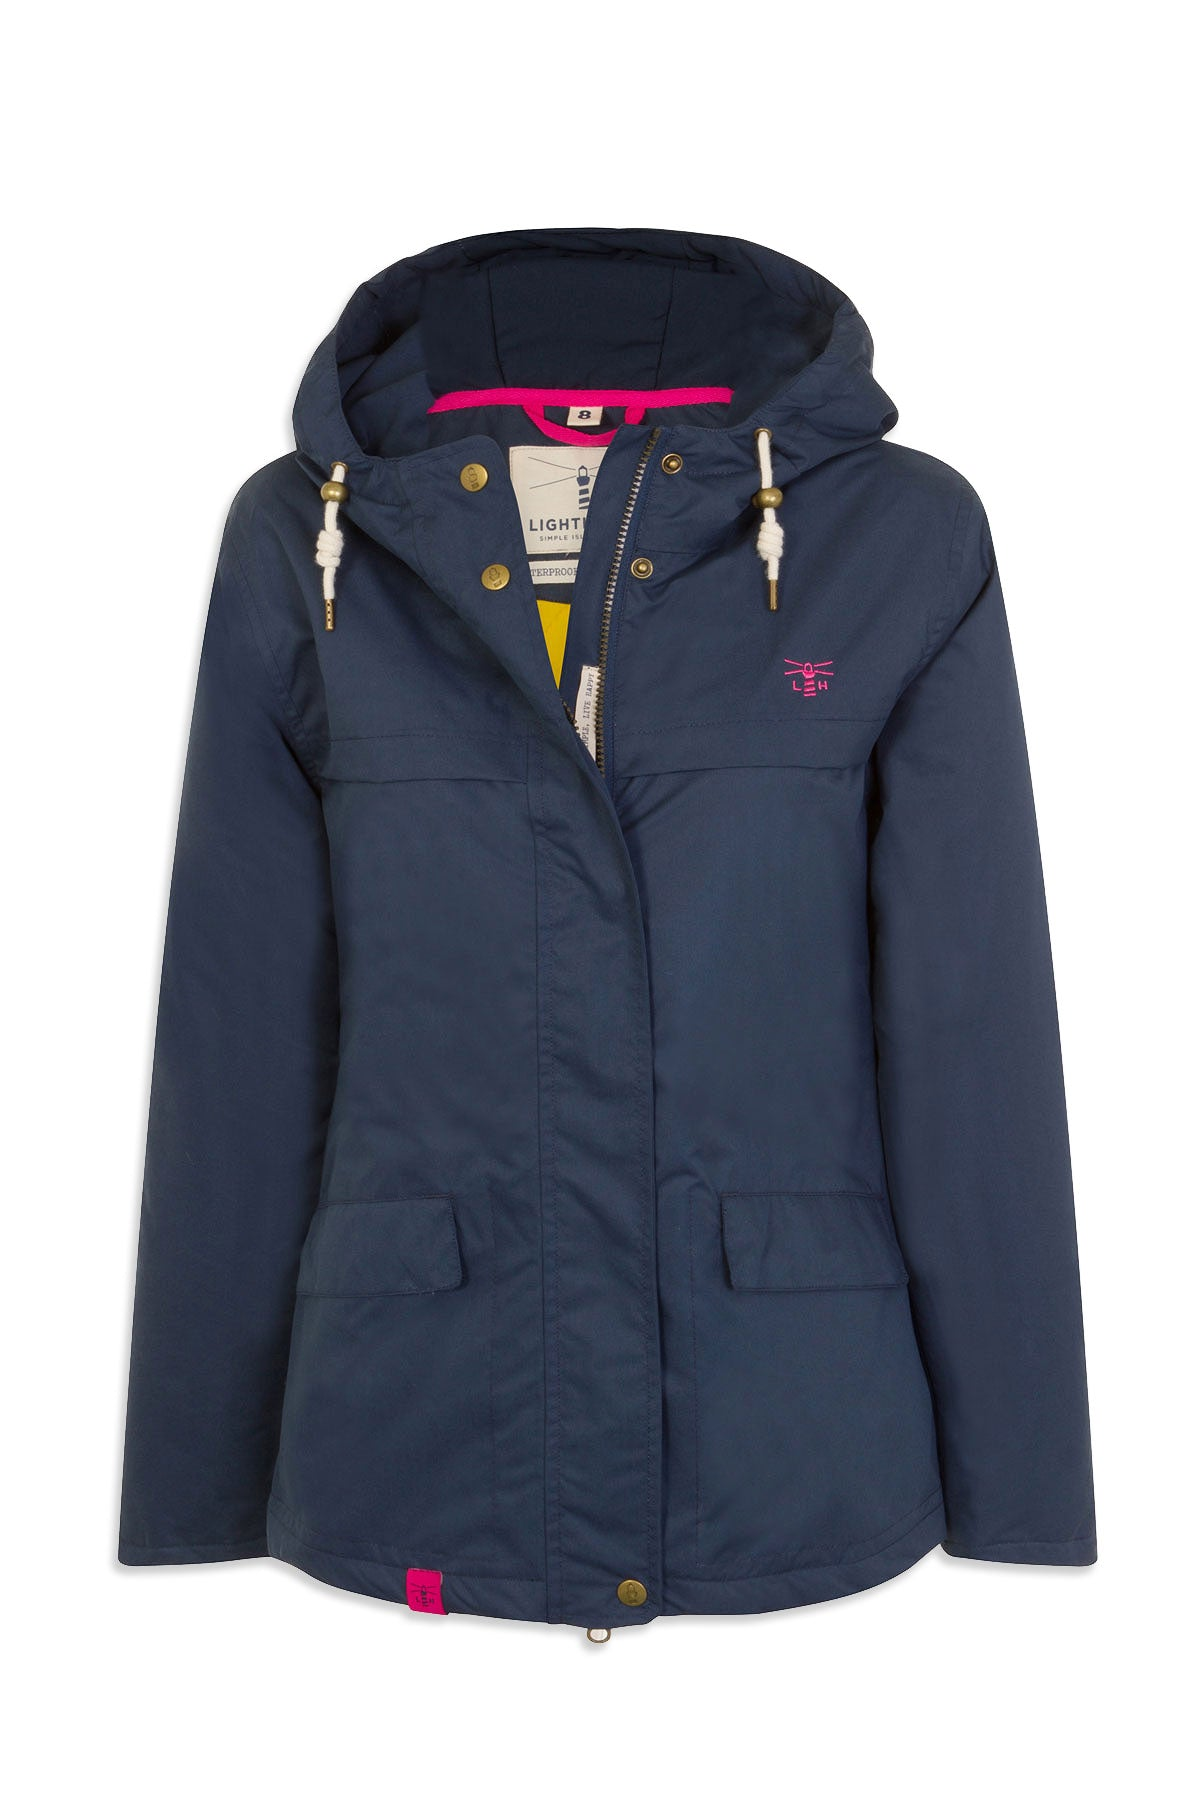 midnight navy colour Beaufort Waterproof Jacket by Lighthouse